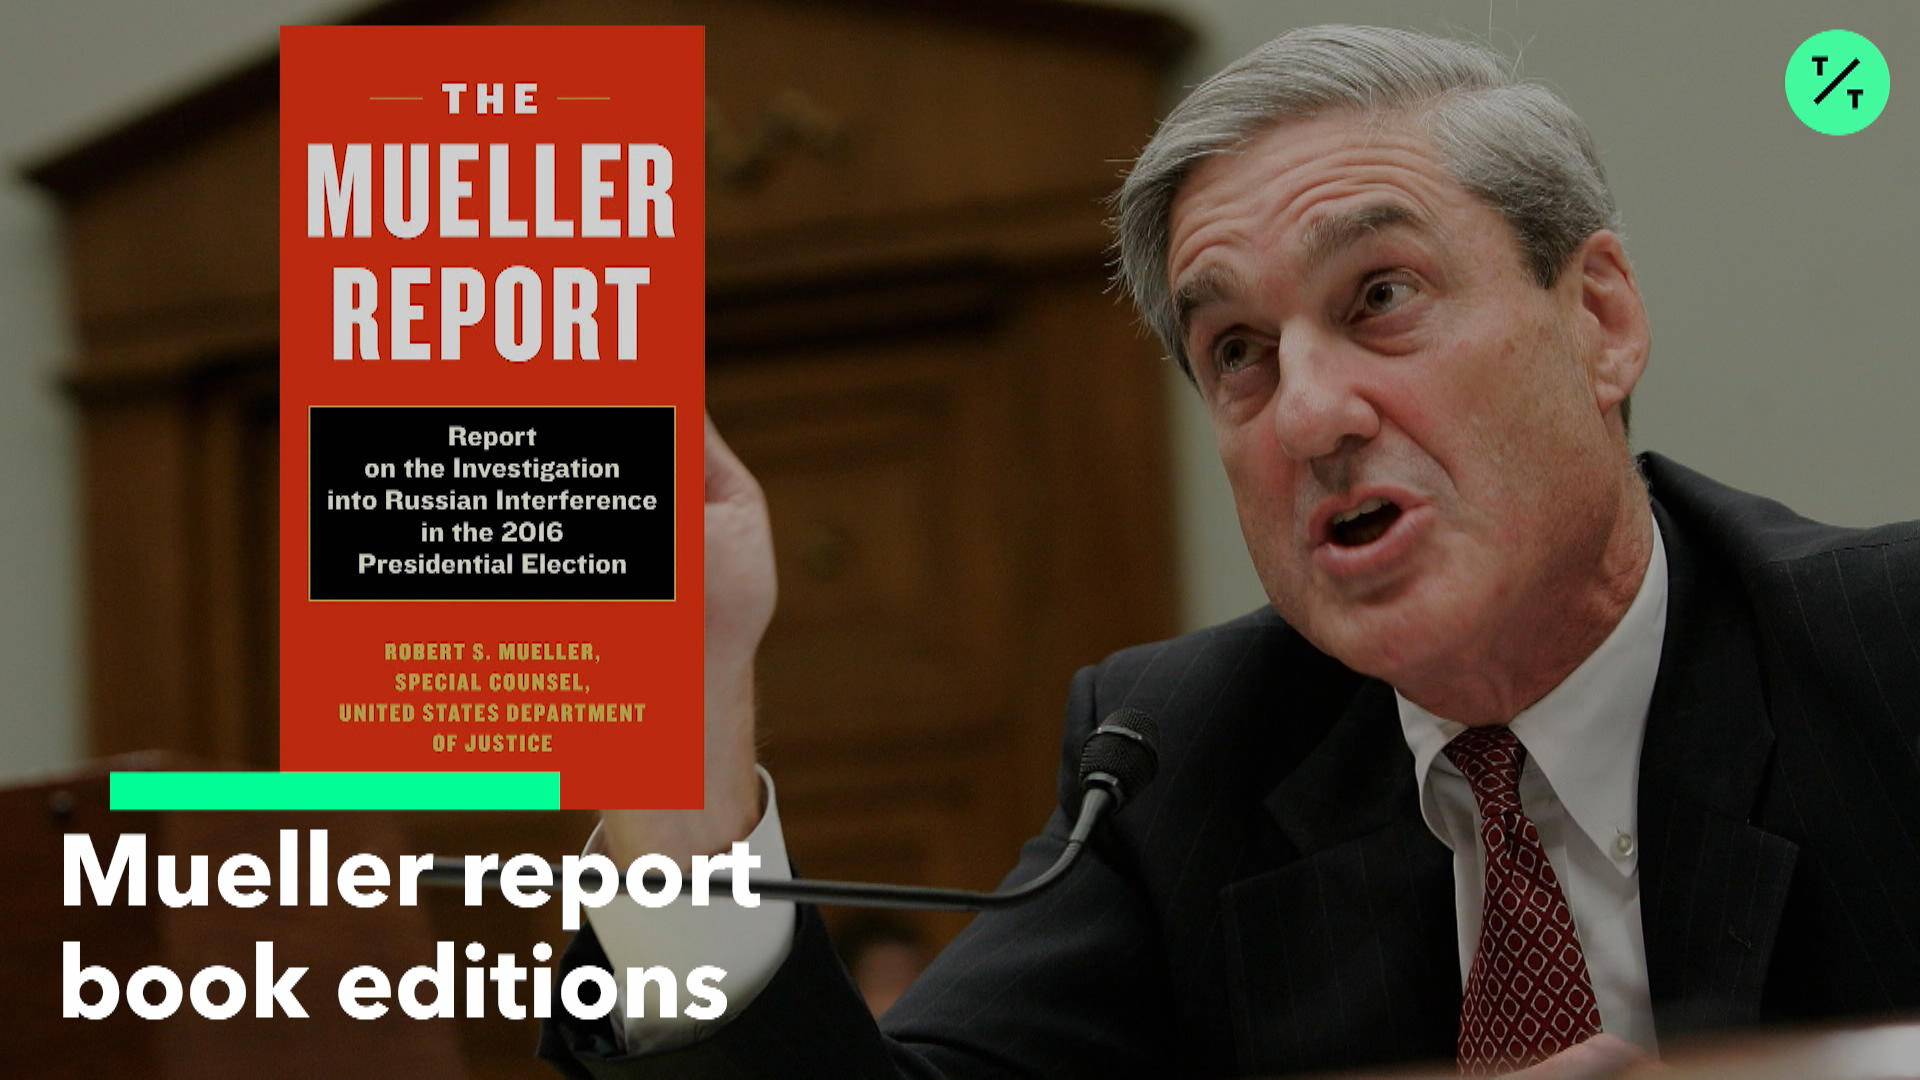 Mueller report book editions